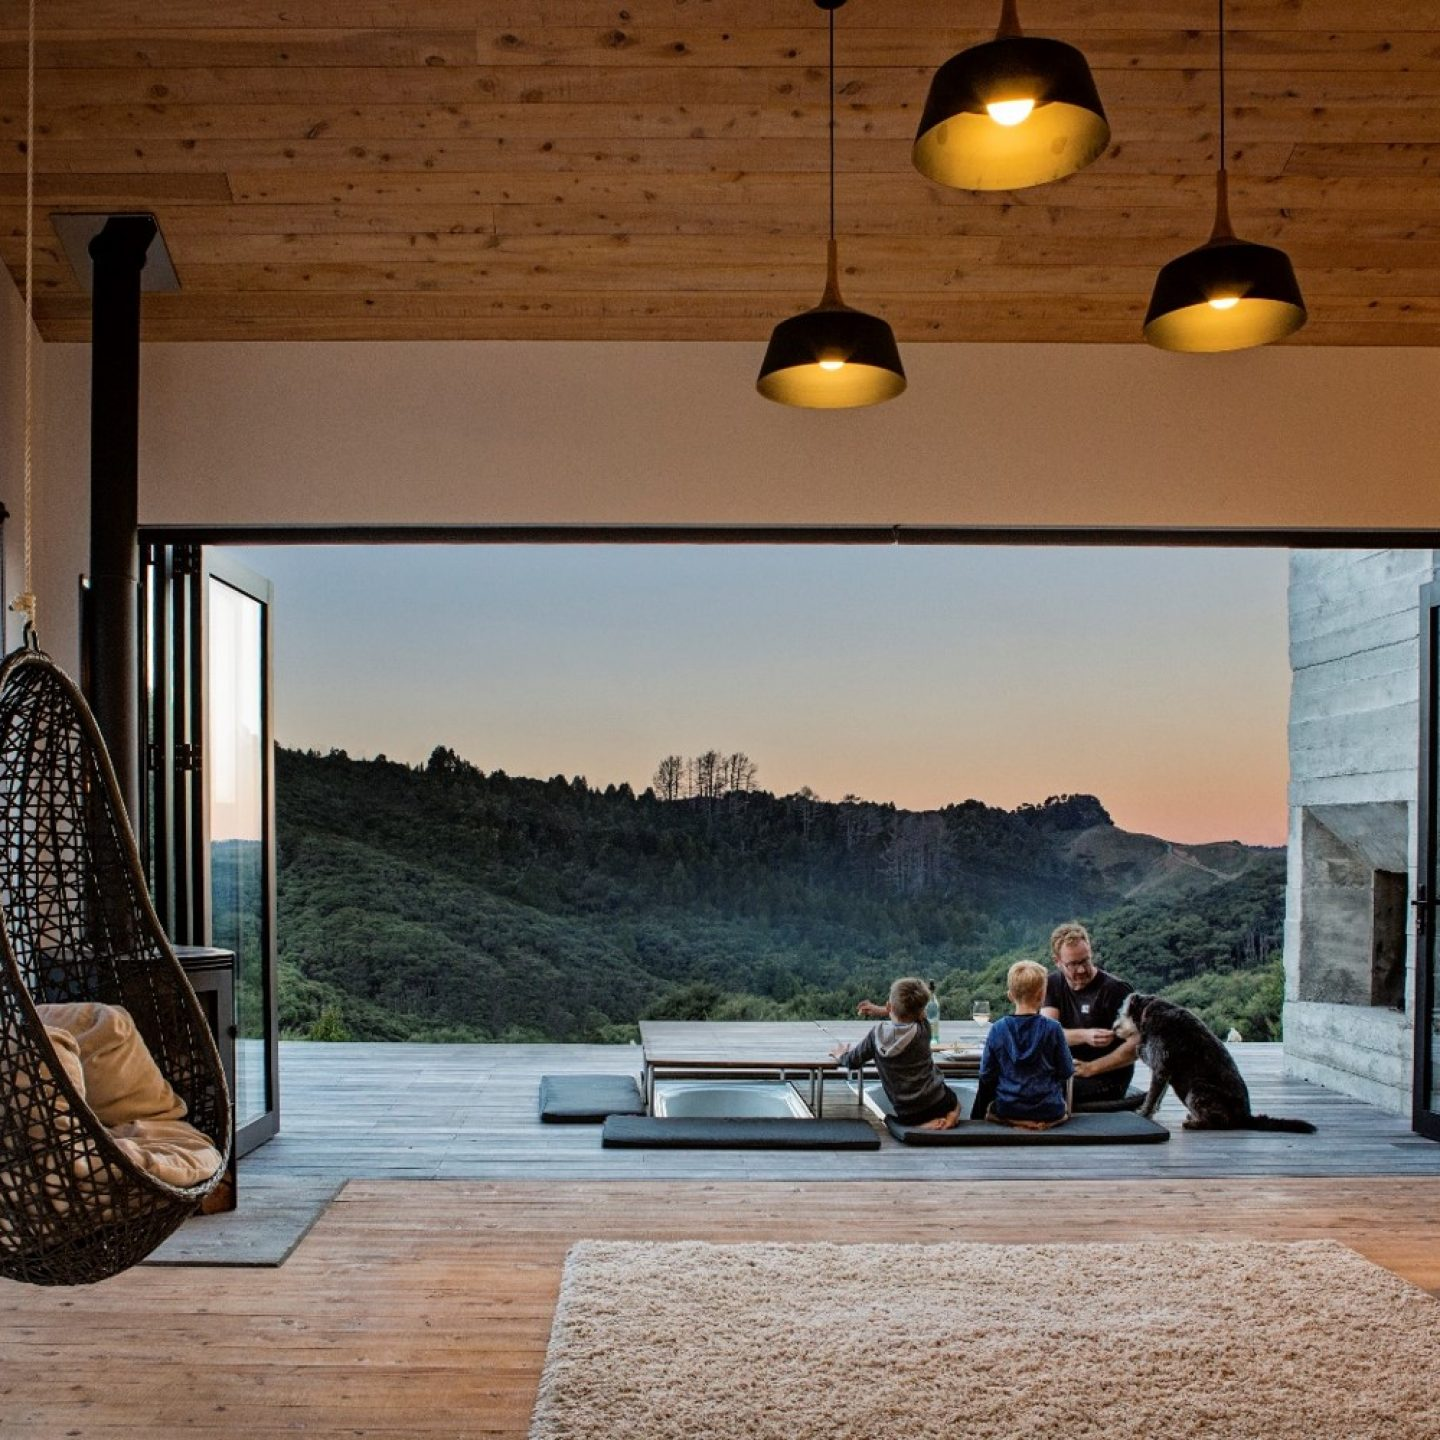 david-maurice-LTD-architectural-back-country-house-puhoi-new-zealand-ignant_01